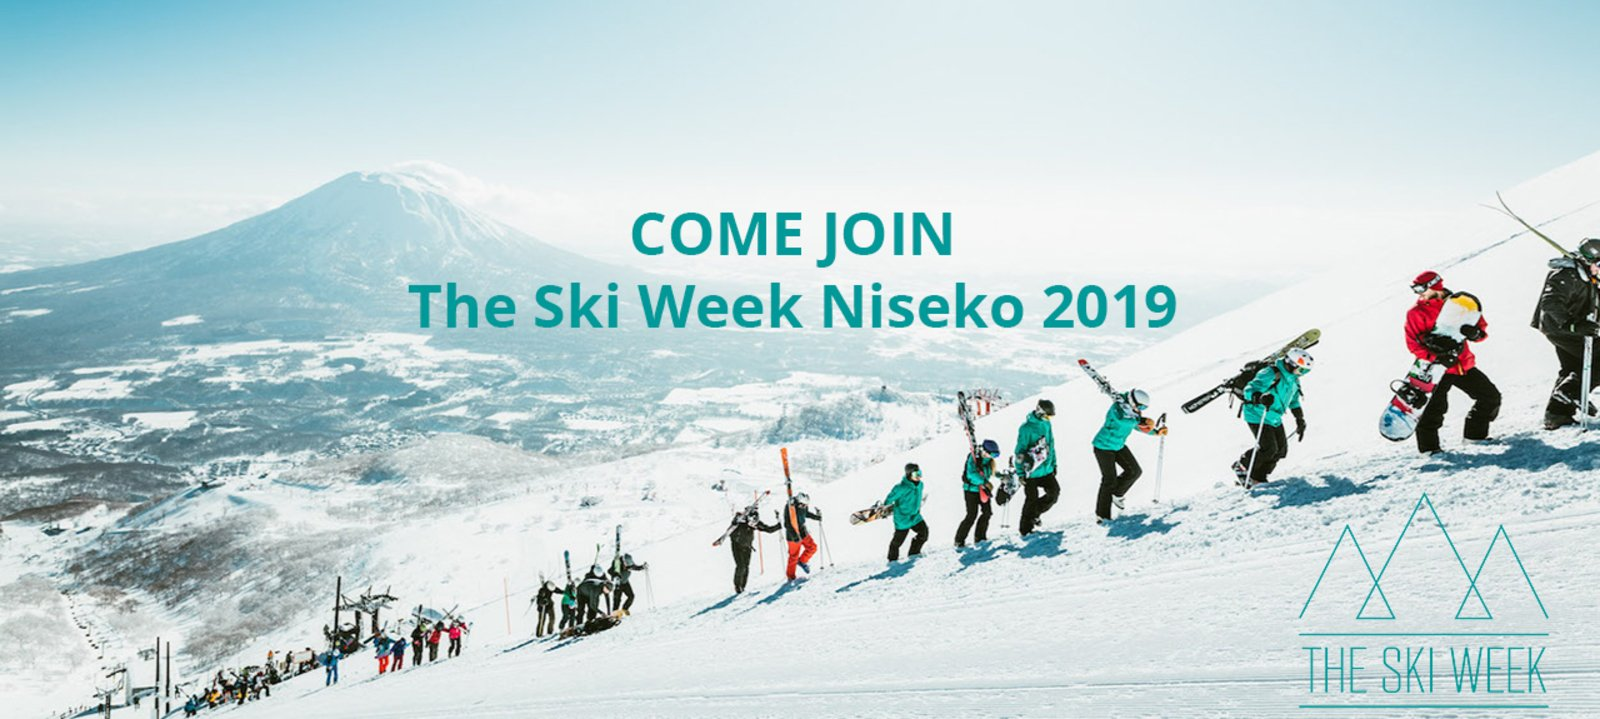 Find out more on The Ski Week Niseko